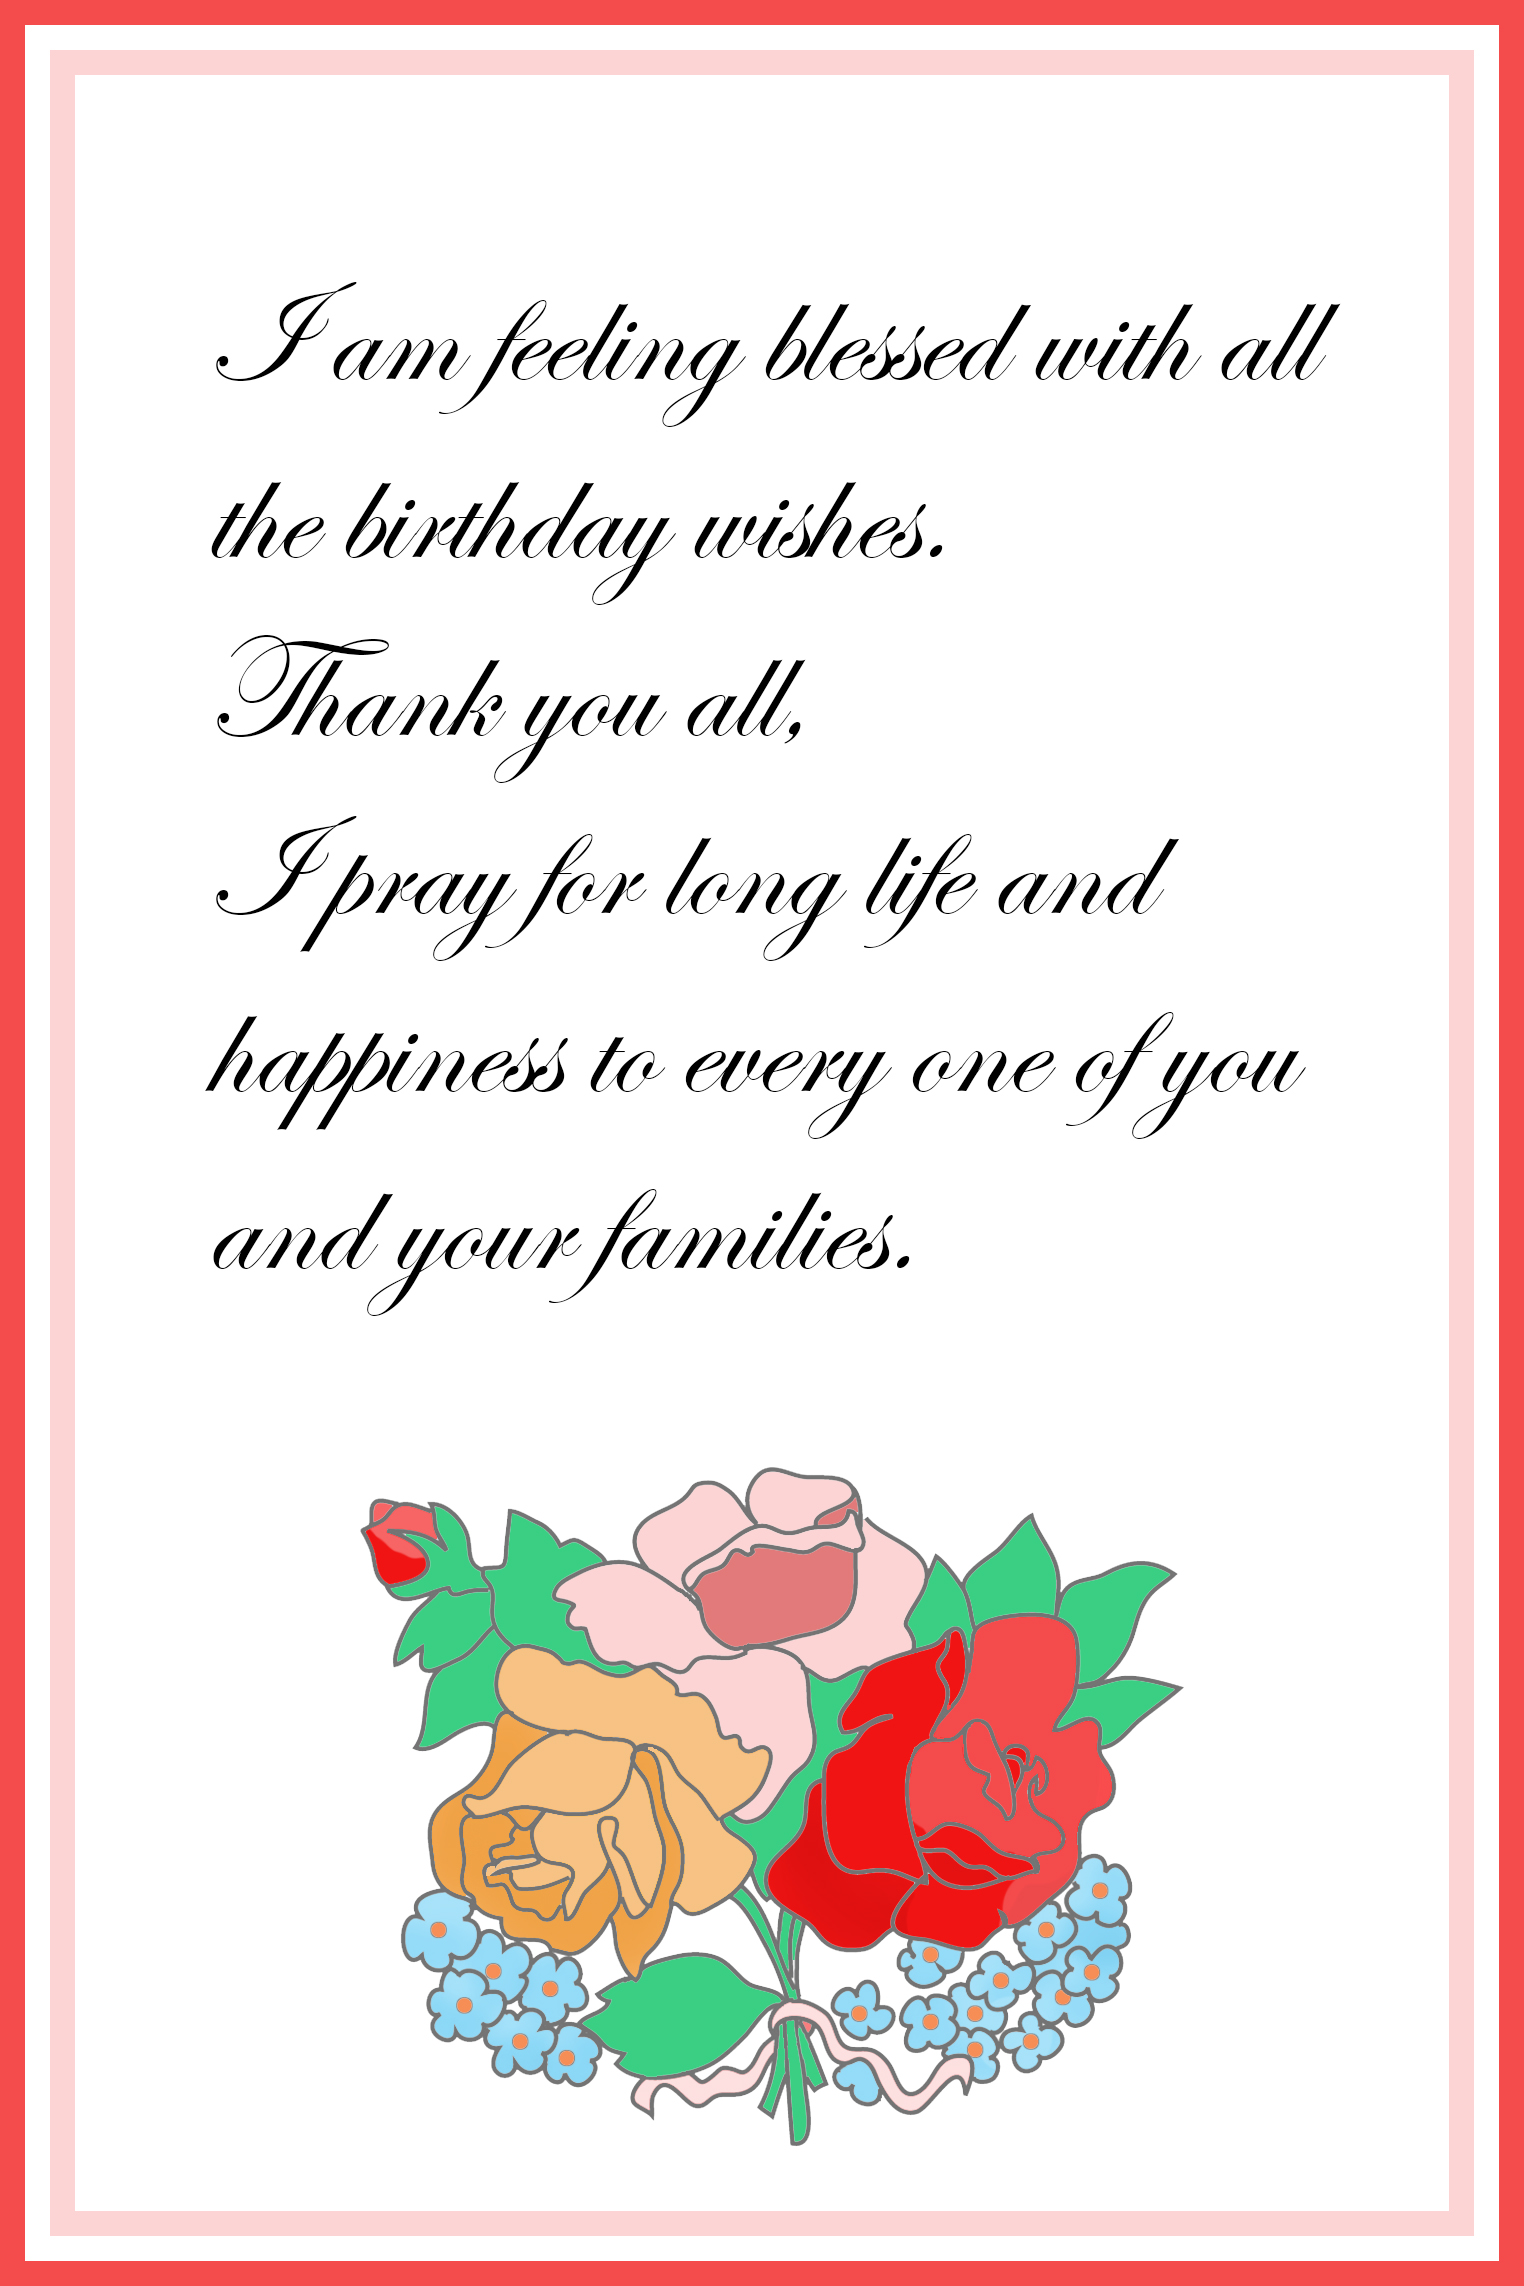 Printable Thank You Cards | Free Printable Greeting Cards